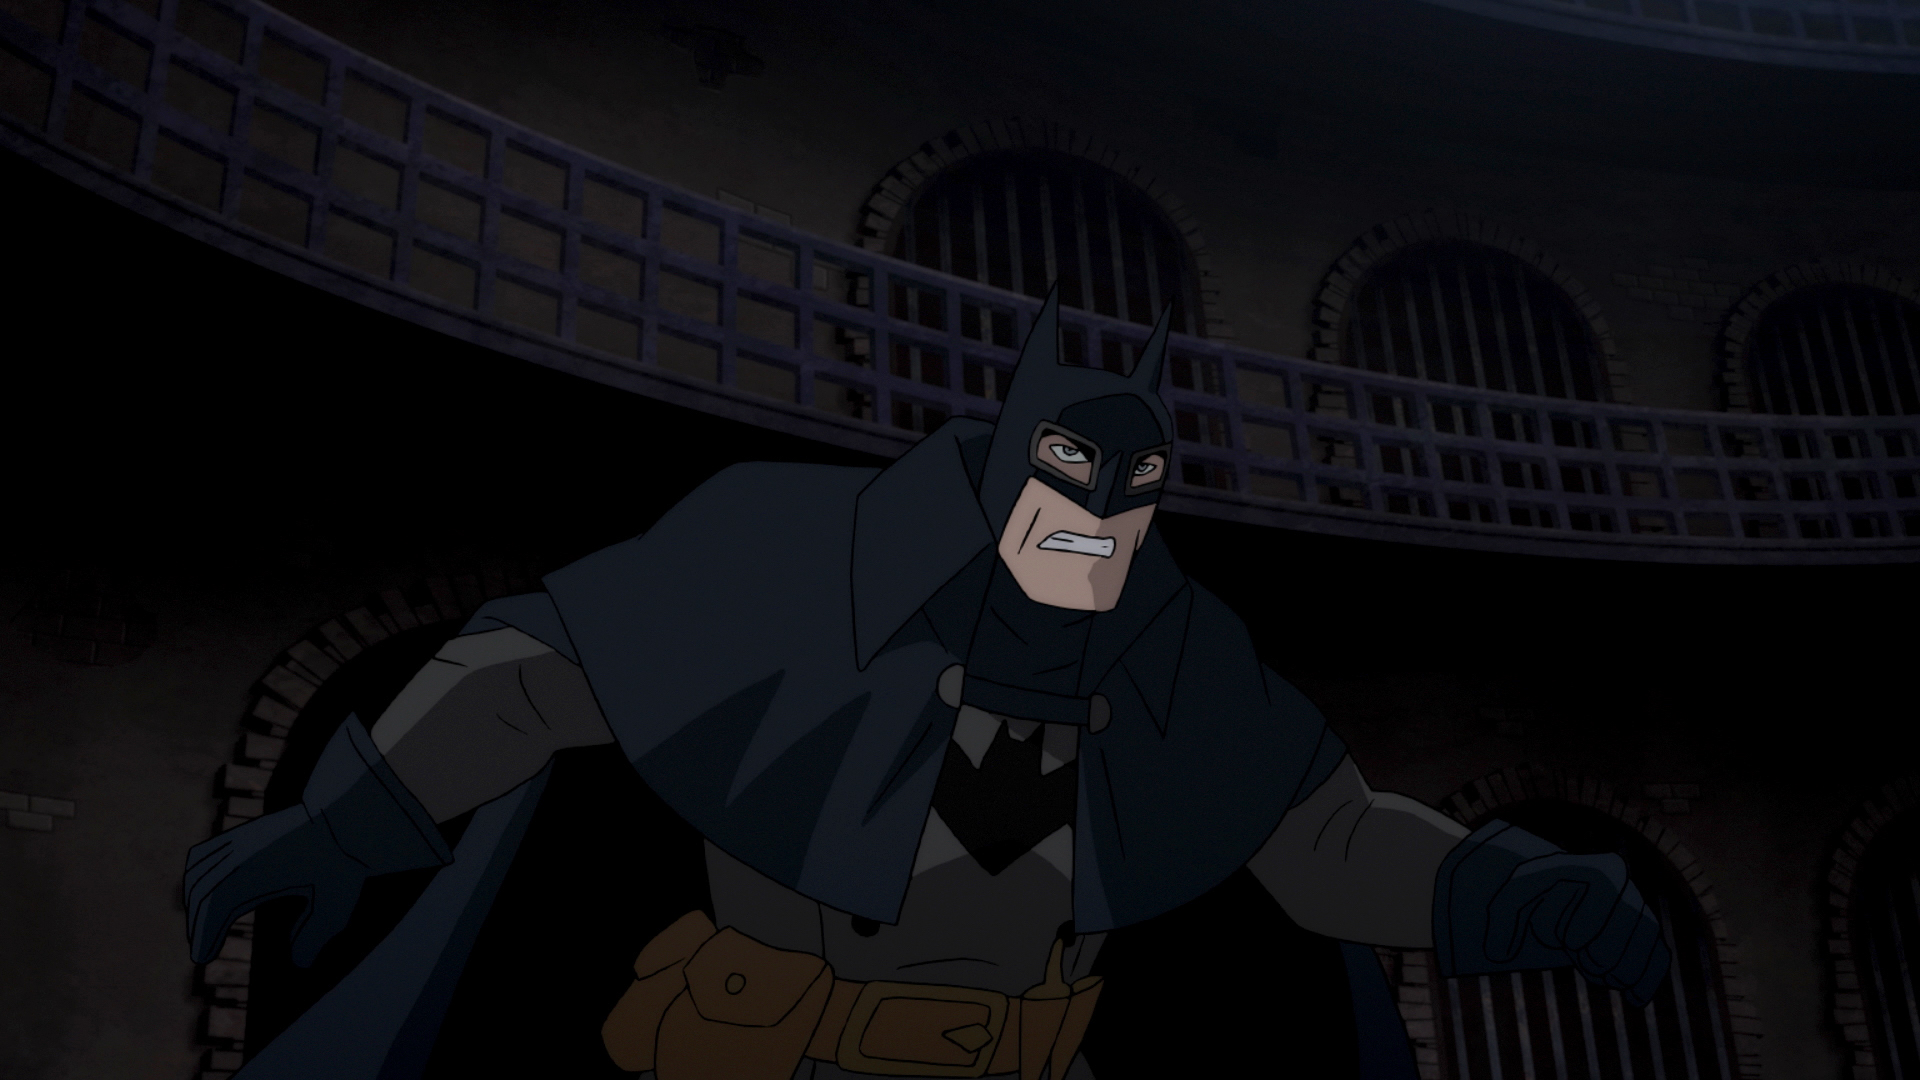 Gotham by Gaslamp dark knight news